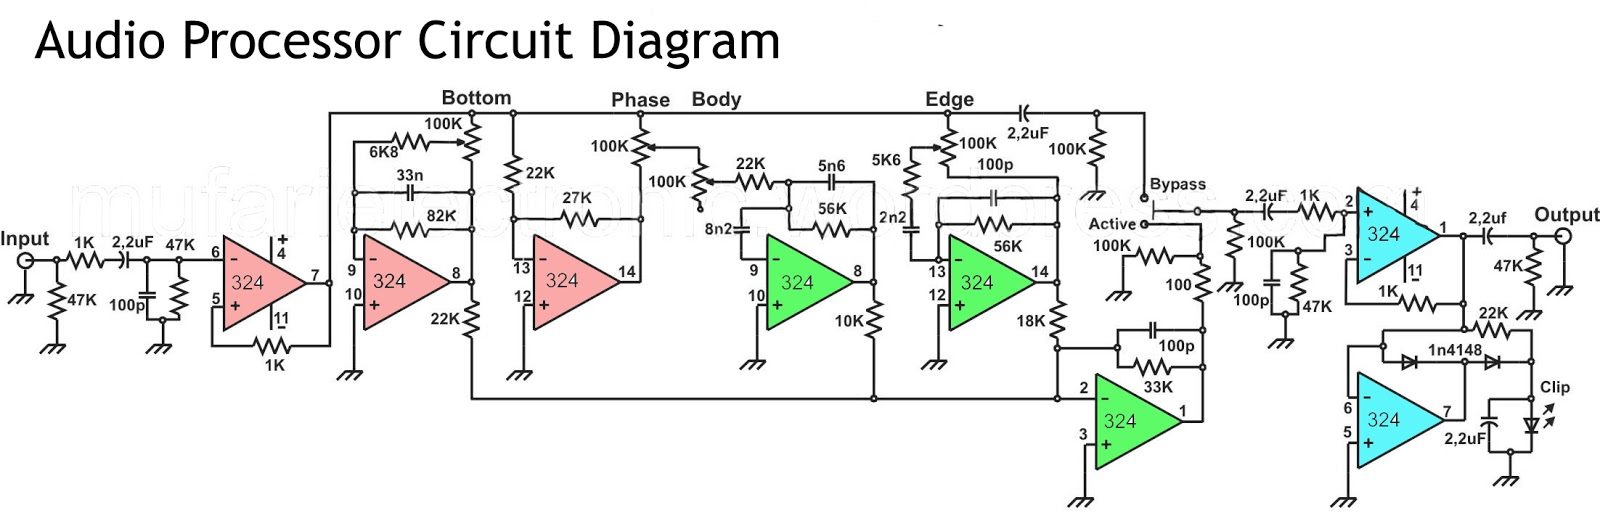 Audio Processor Circuit using IC LM324 - Electronic Circuit